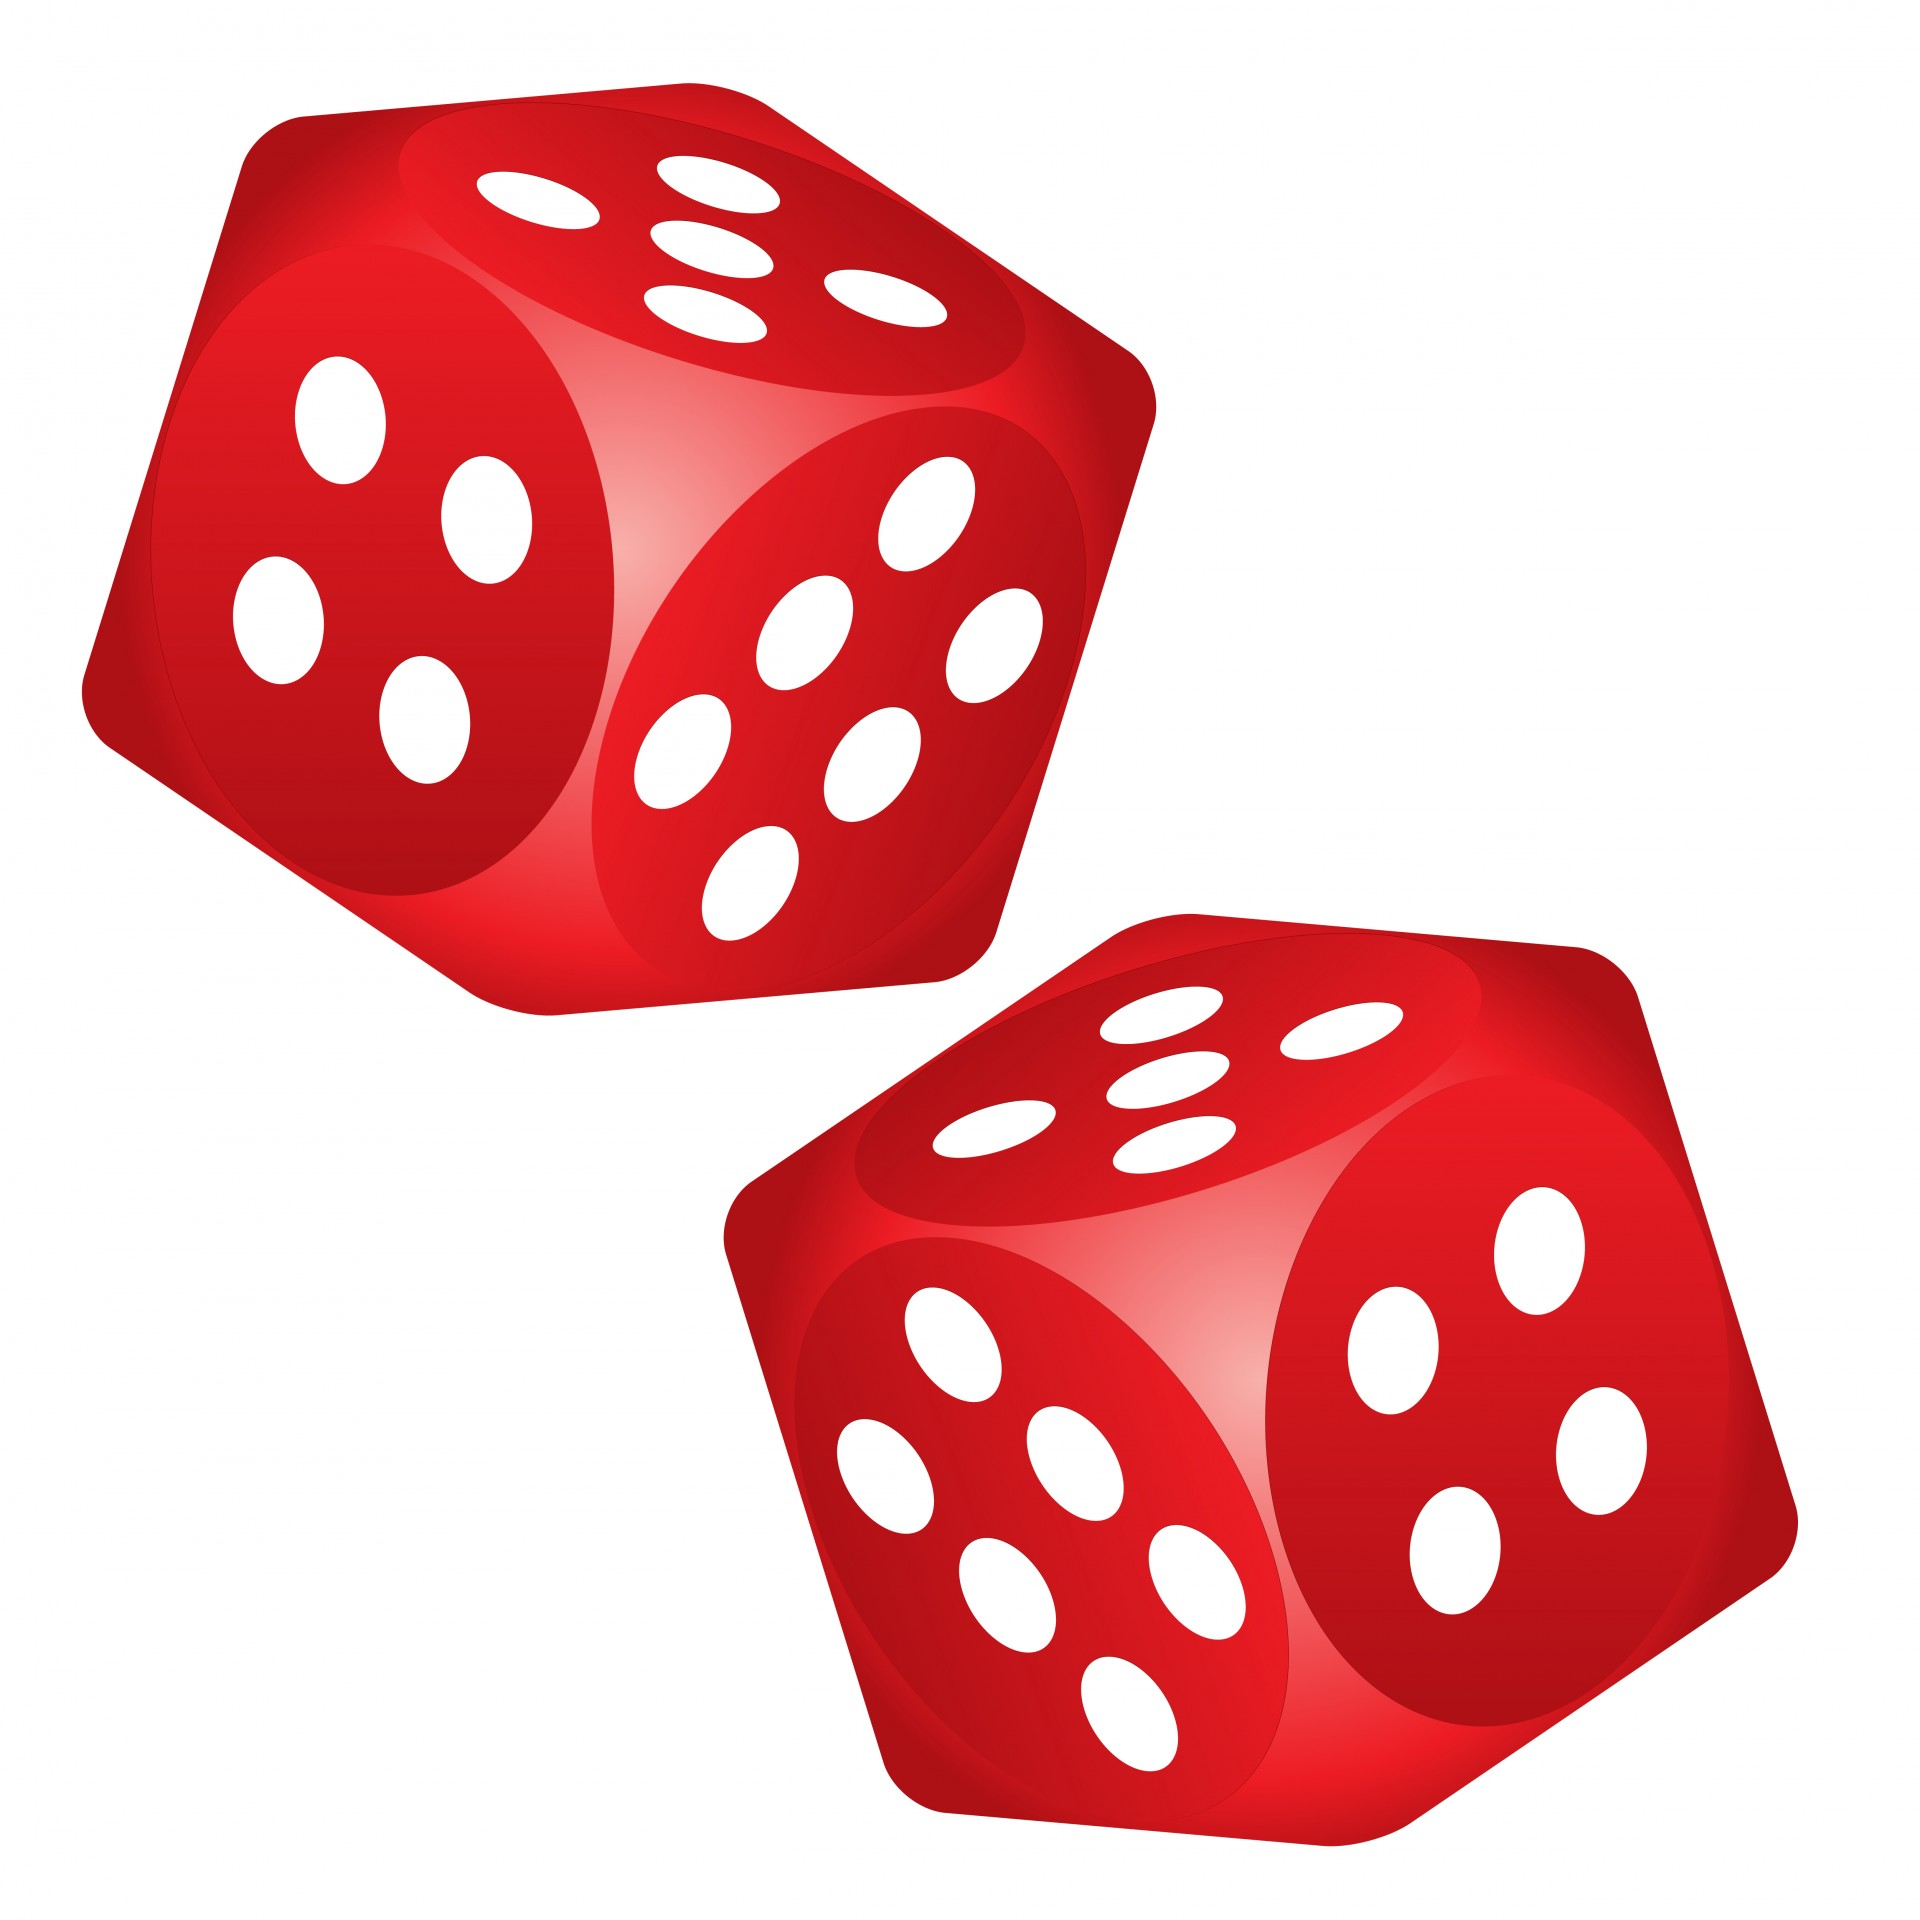 Red Dice Set Free Stock Photo - Public Domain Pictures